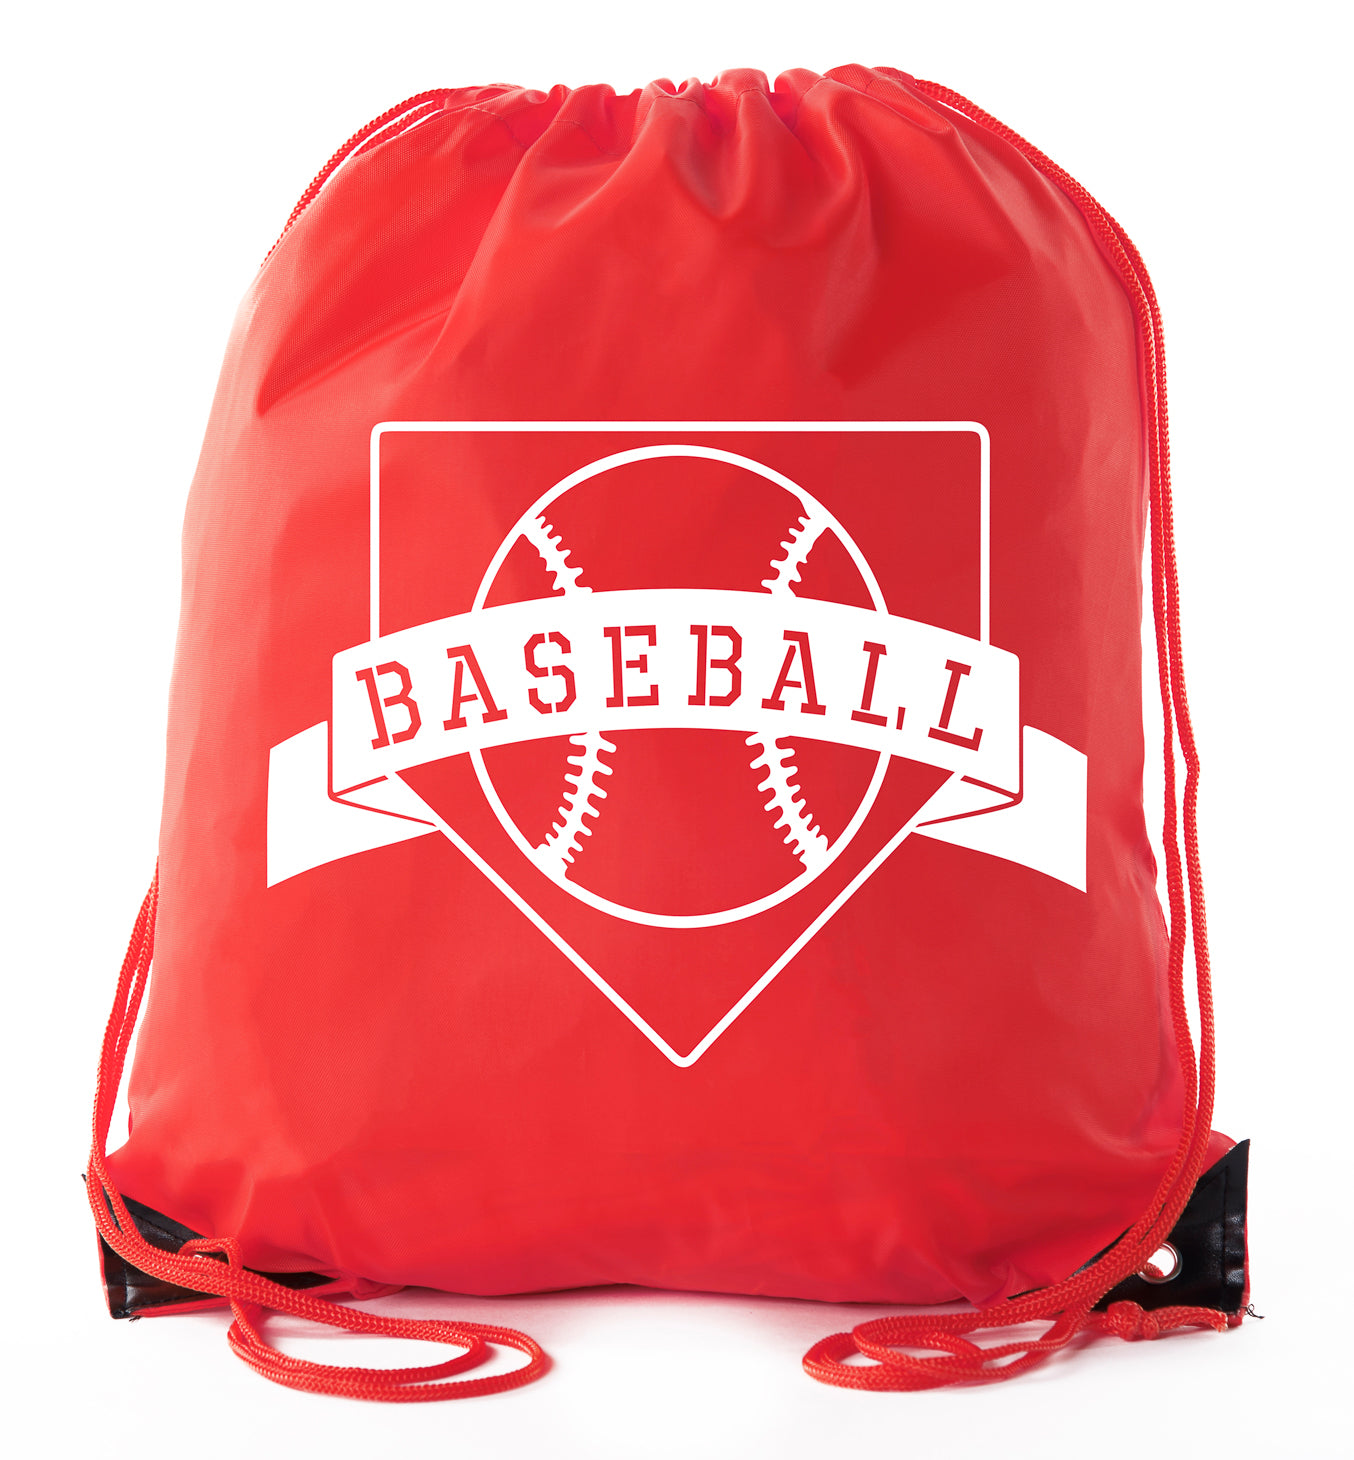 Accessory - Mato & Hash Boys Drawstring Backpack Baseball Bags 1-10 Pack Bulk Options - Home Plate